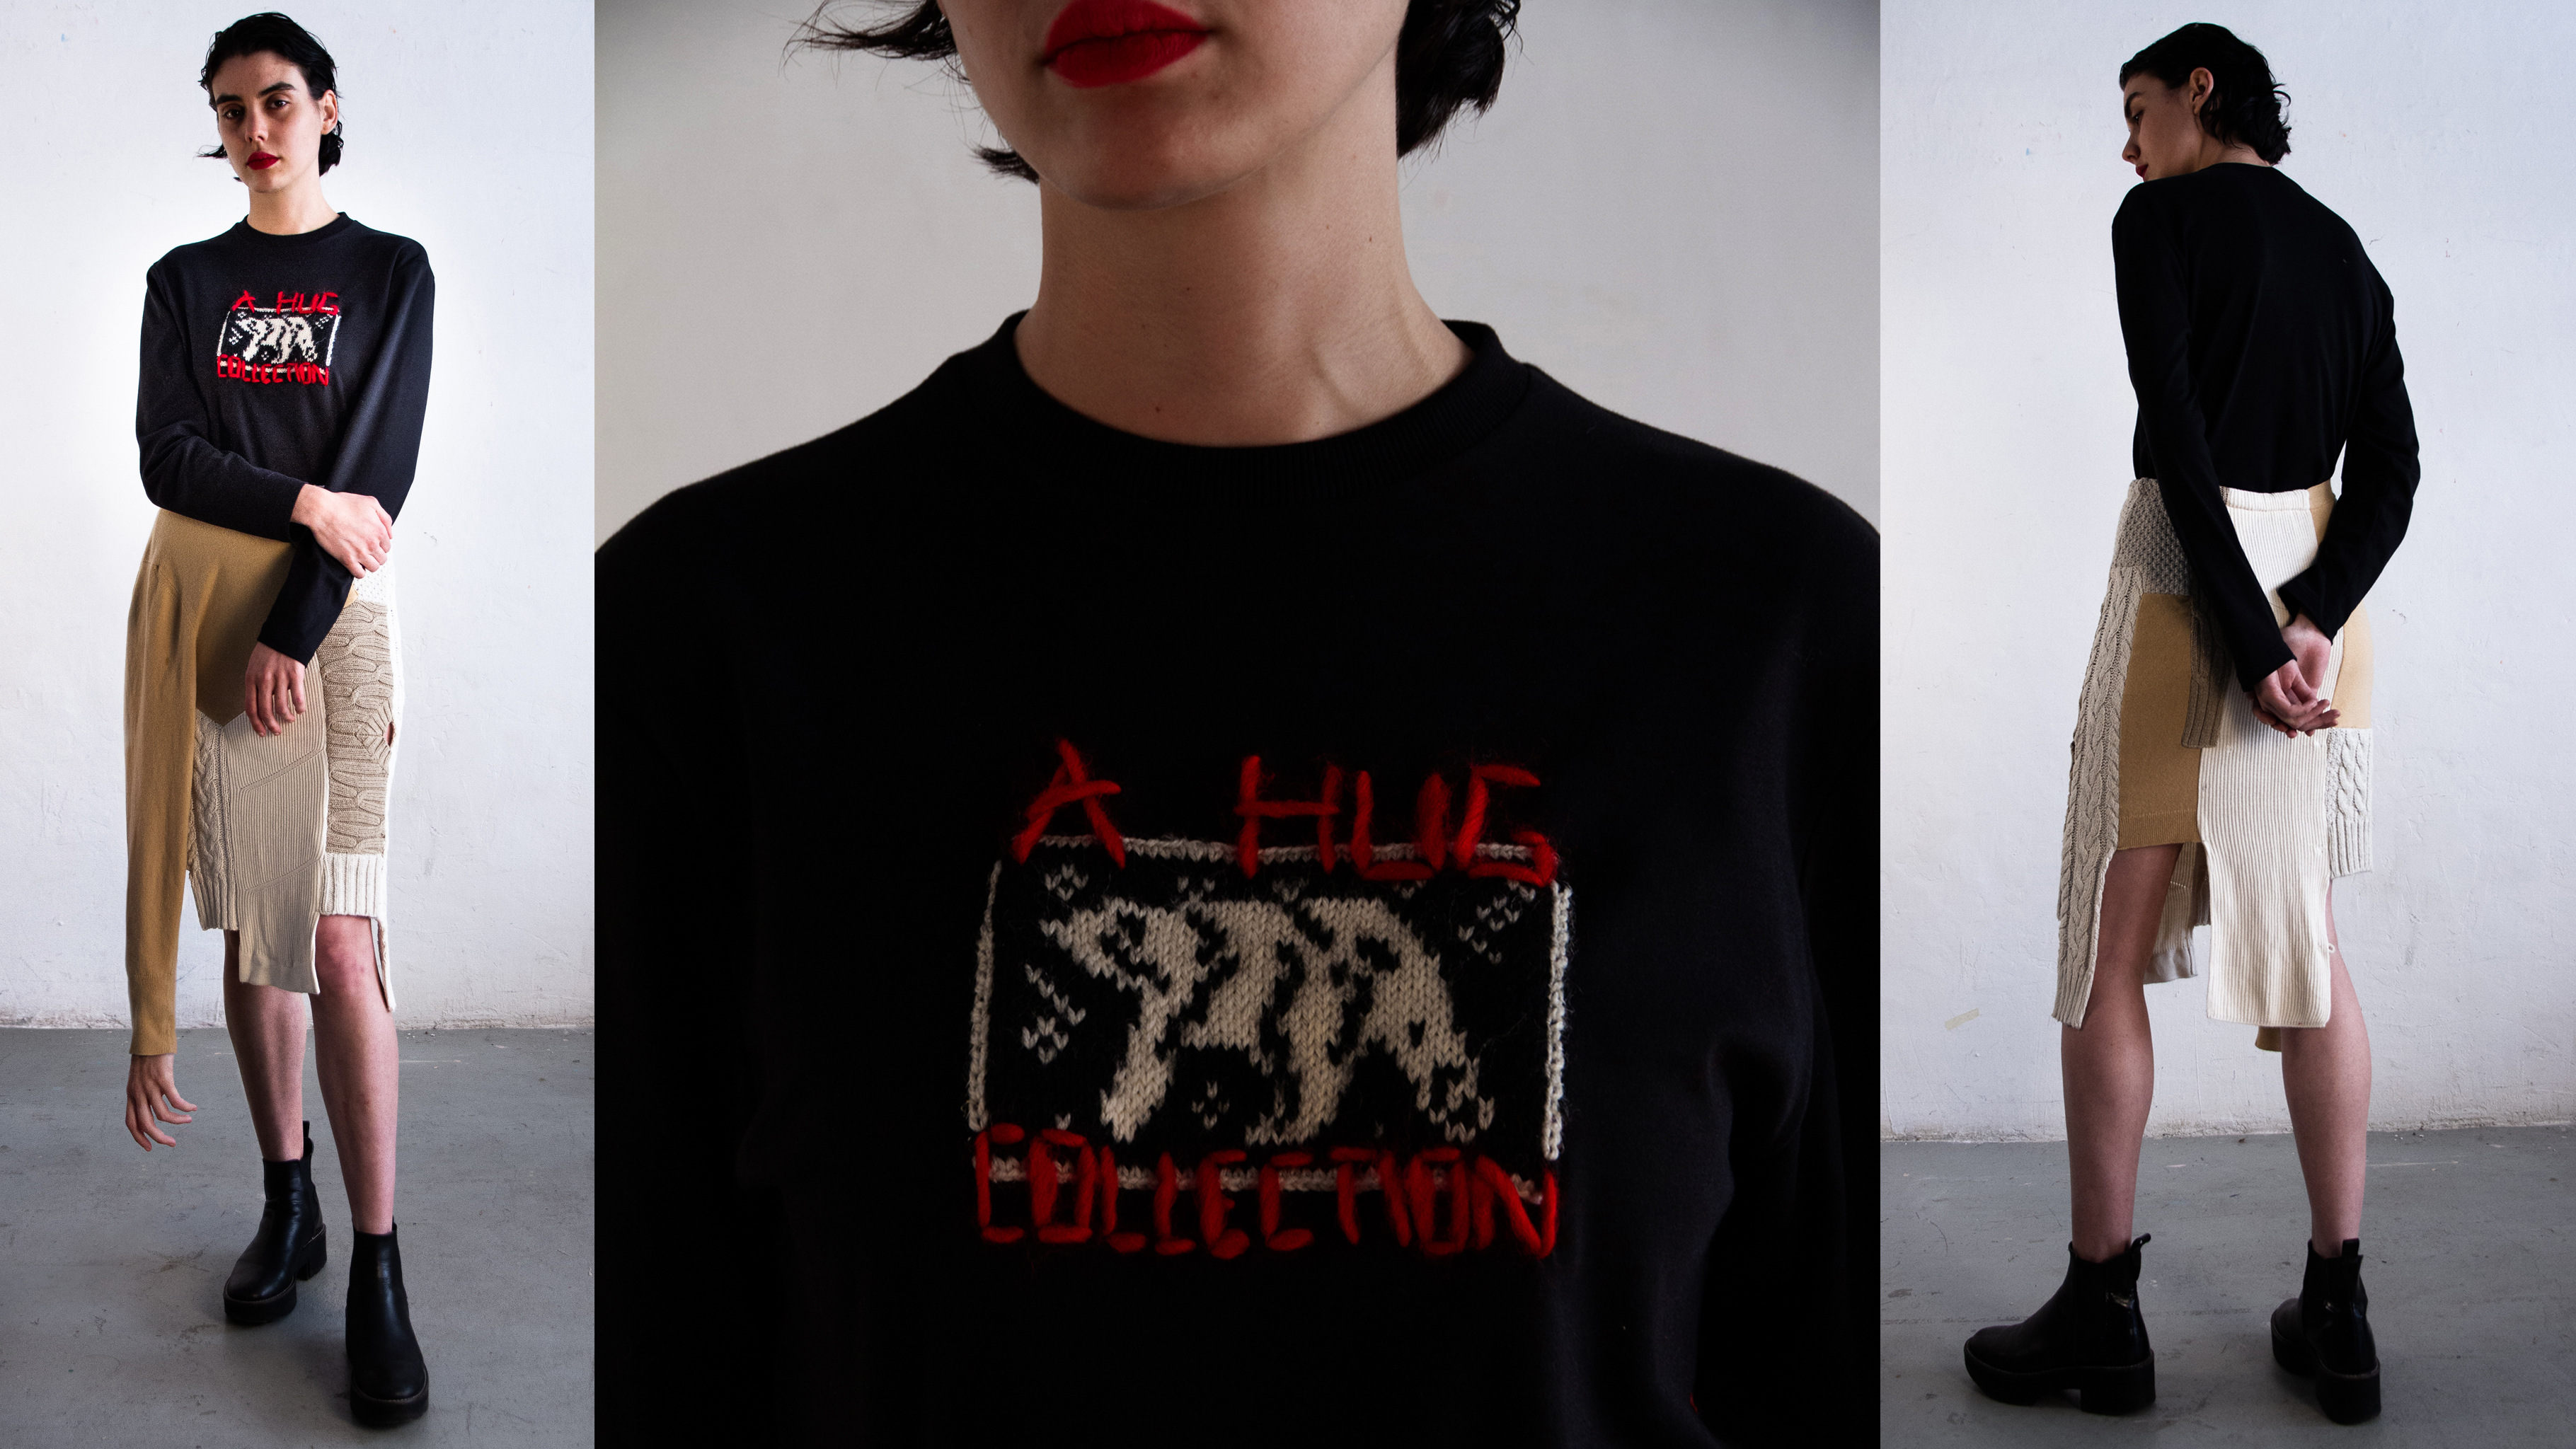 Ahugcollection – eine Kollektion von Alex Henkes